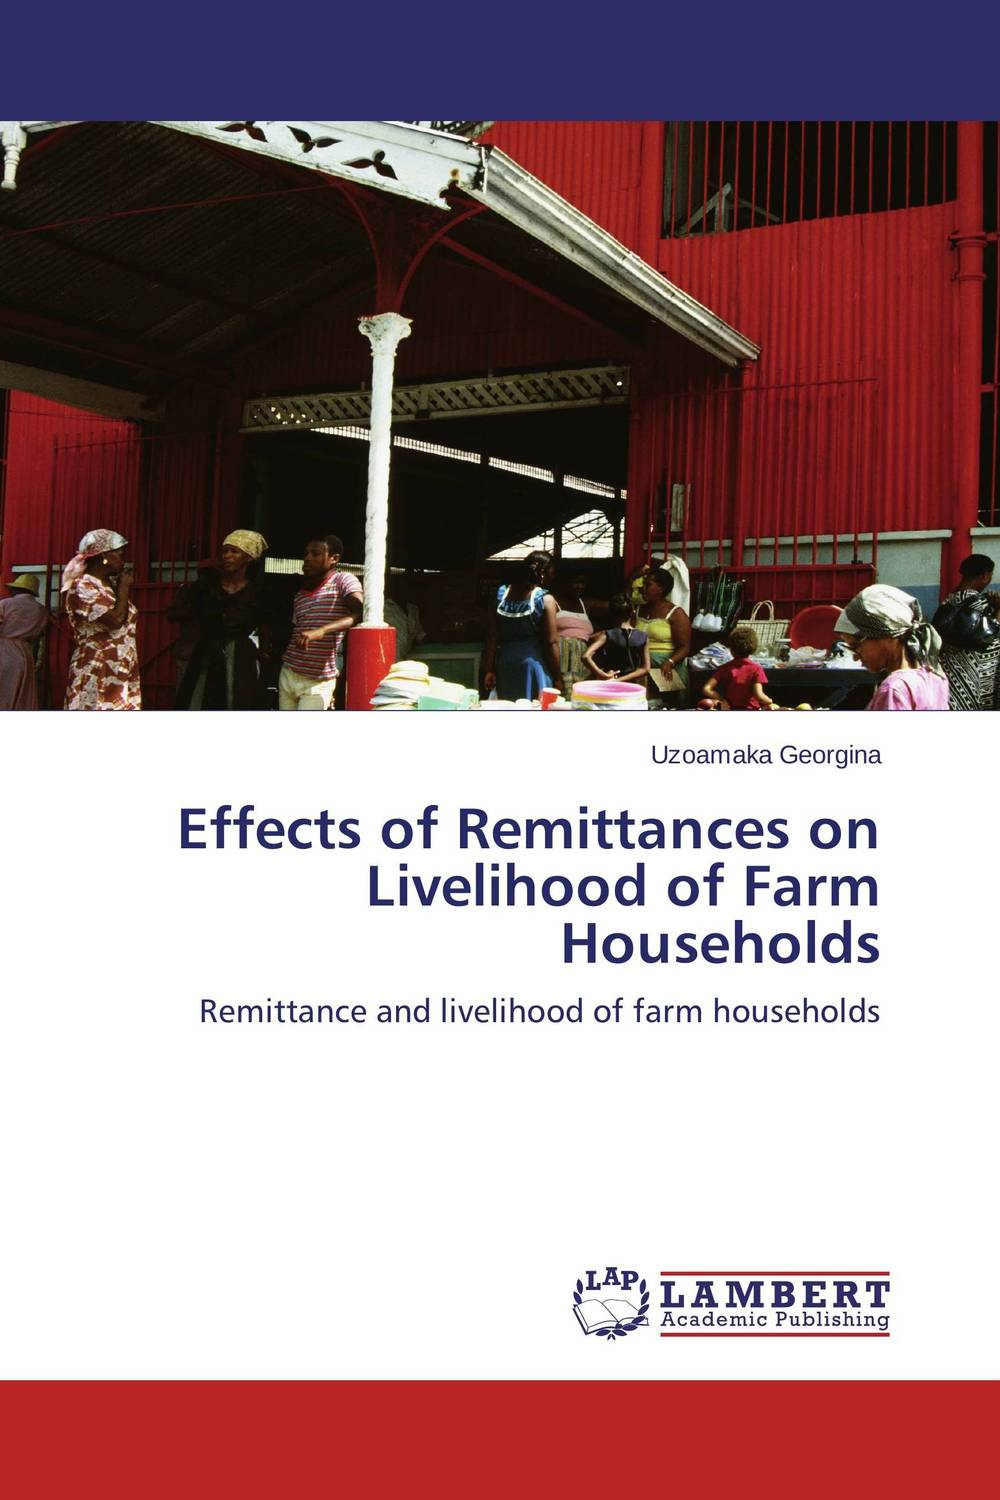 Effects of Remittances on Livelihood of Farm Households